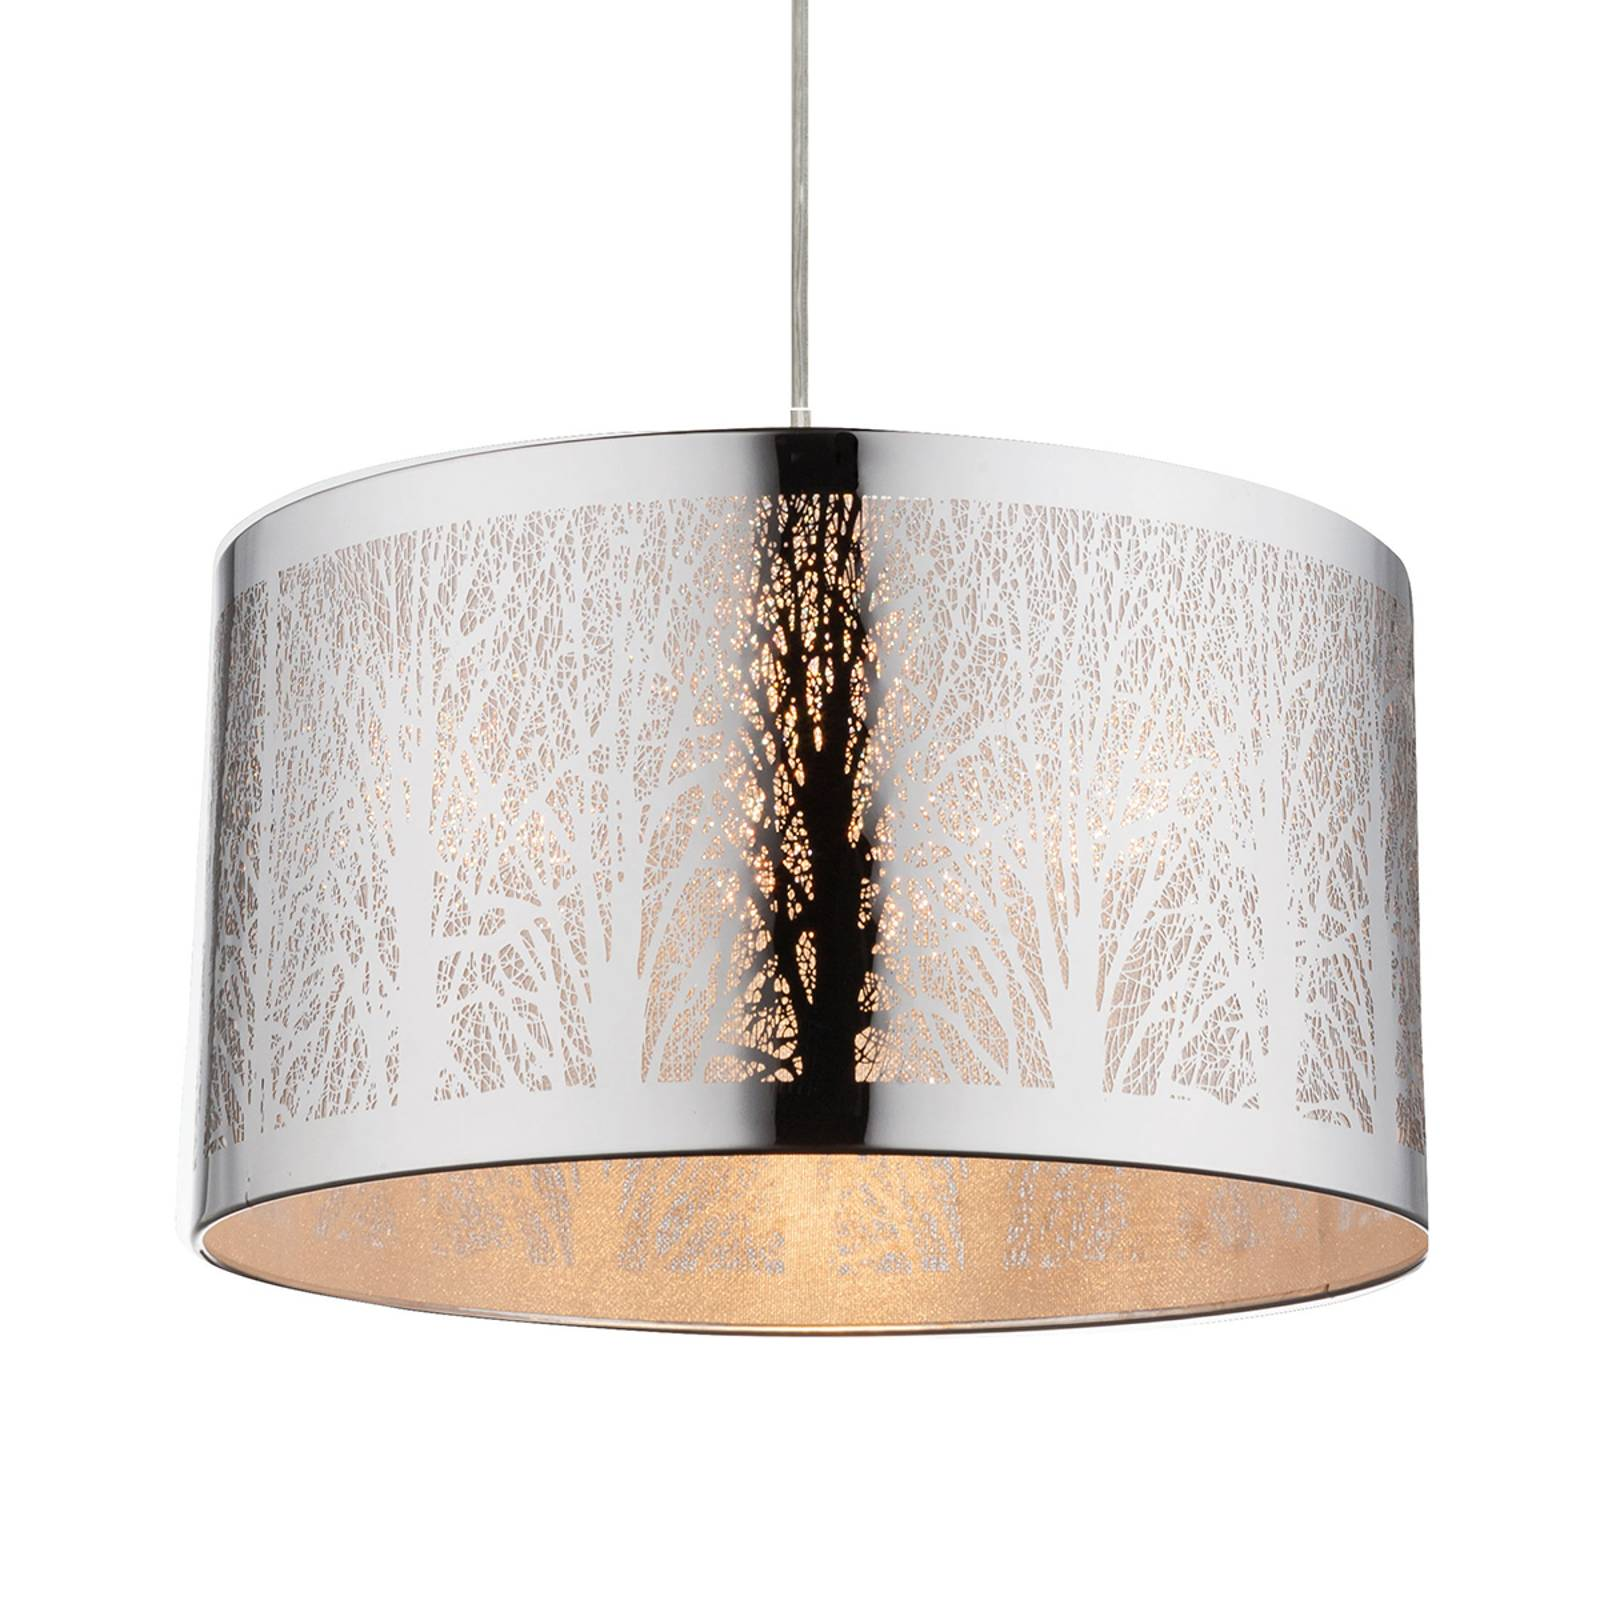 Tree pattern hanging light Cianna from Globo